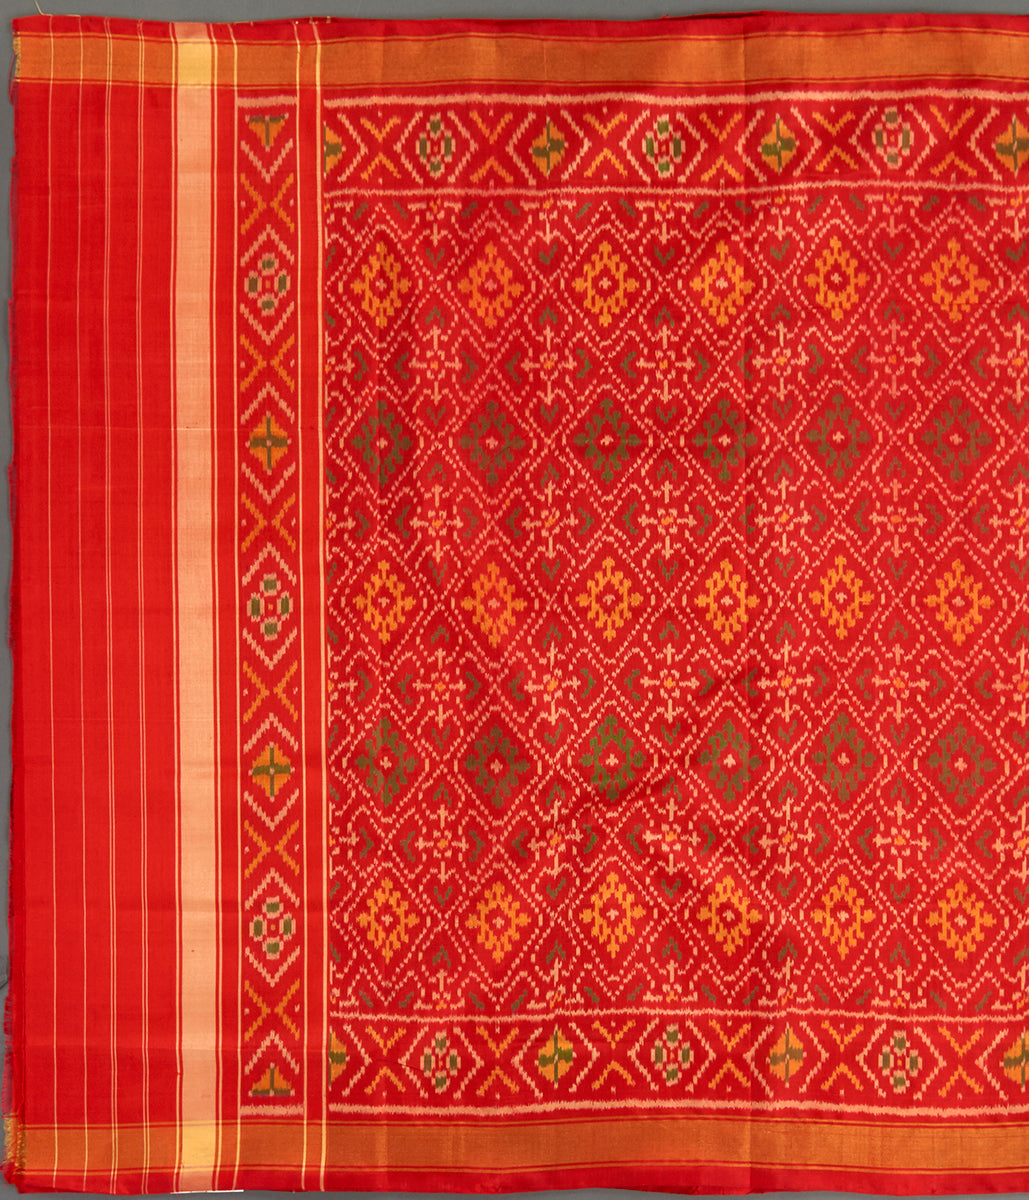 Handwoven Rajkot Silk Patola Dupatta in Red with Zari Border